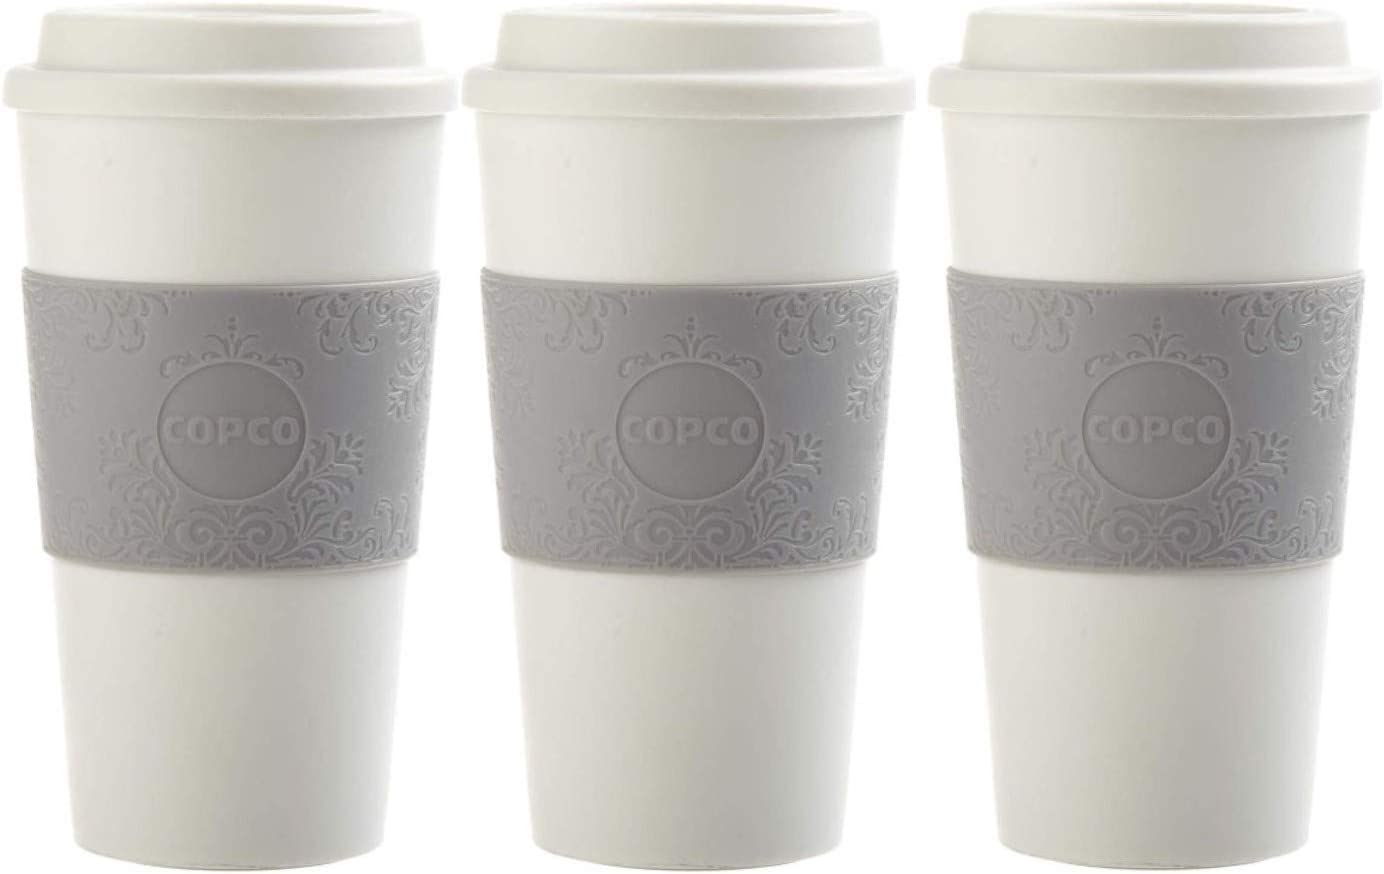 Copco Acadia Travel Mug, 16-Ounce, 3 Pack Bundle (Damask Gray)